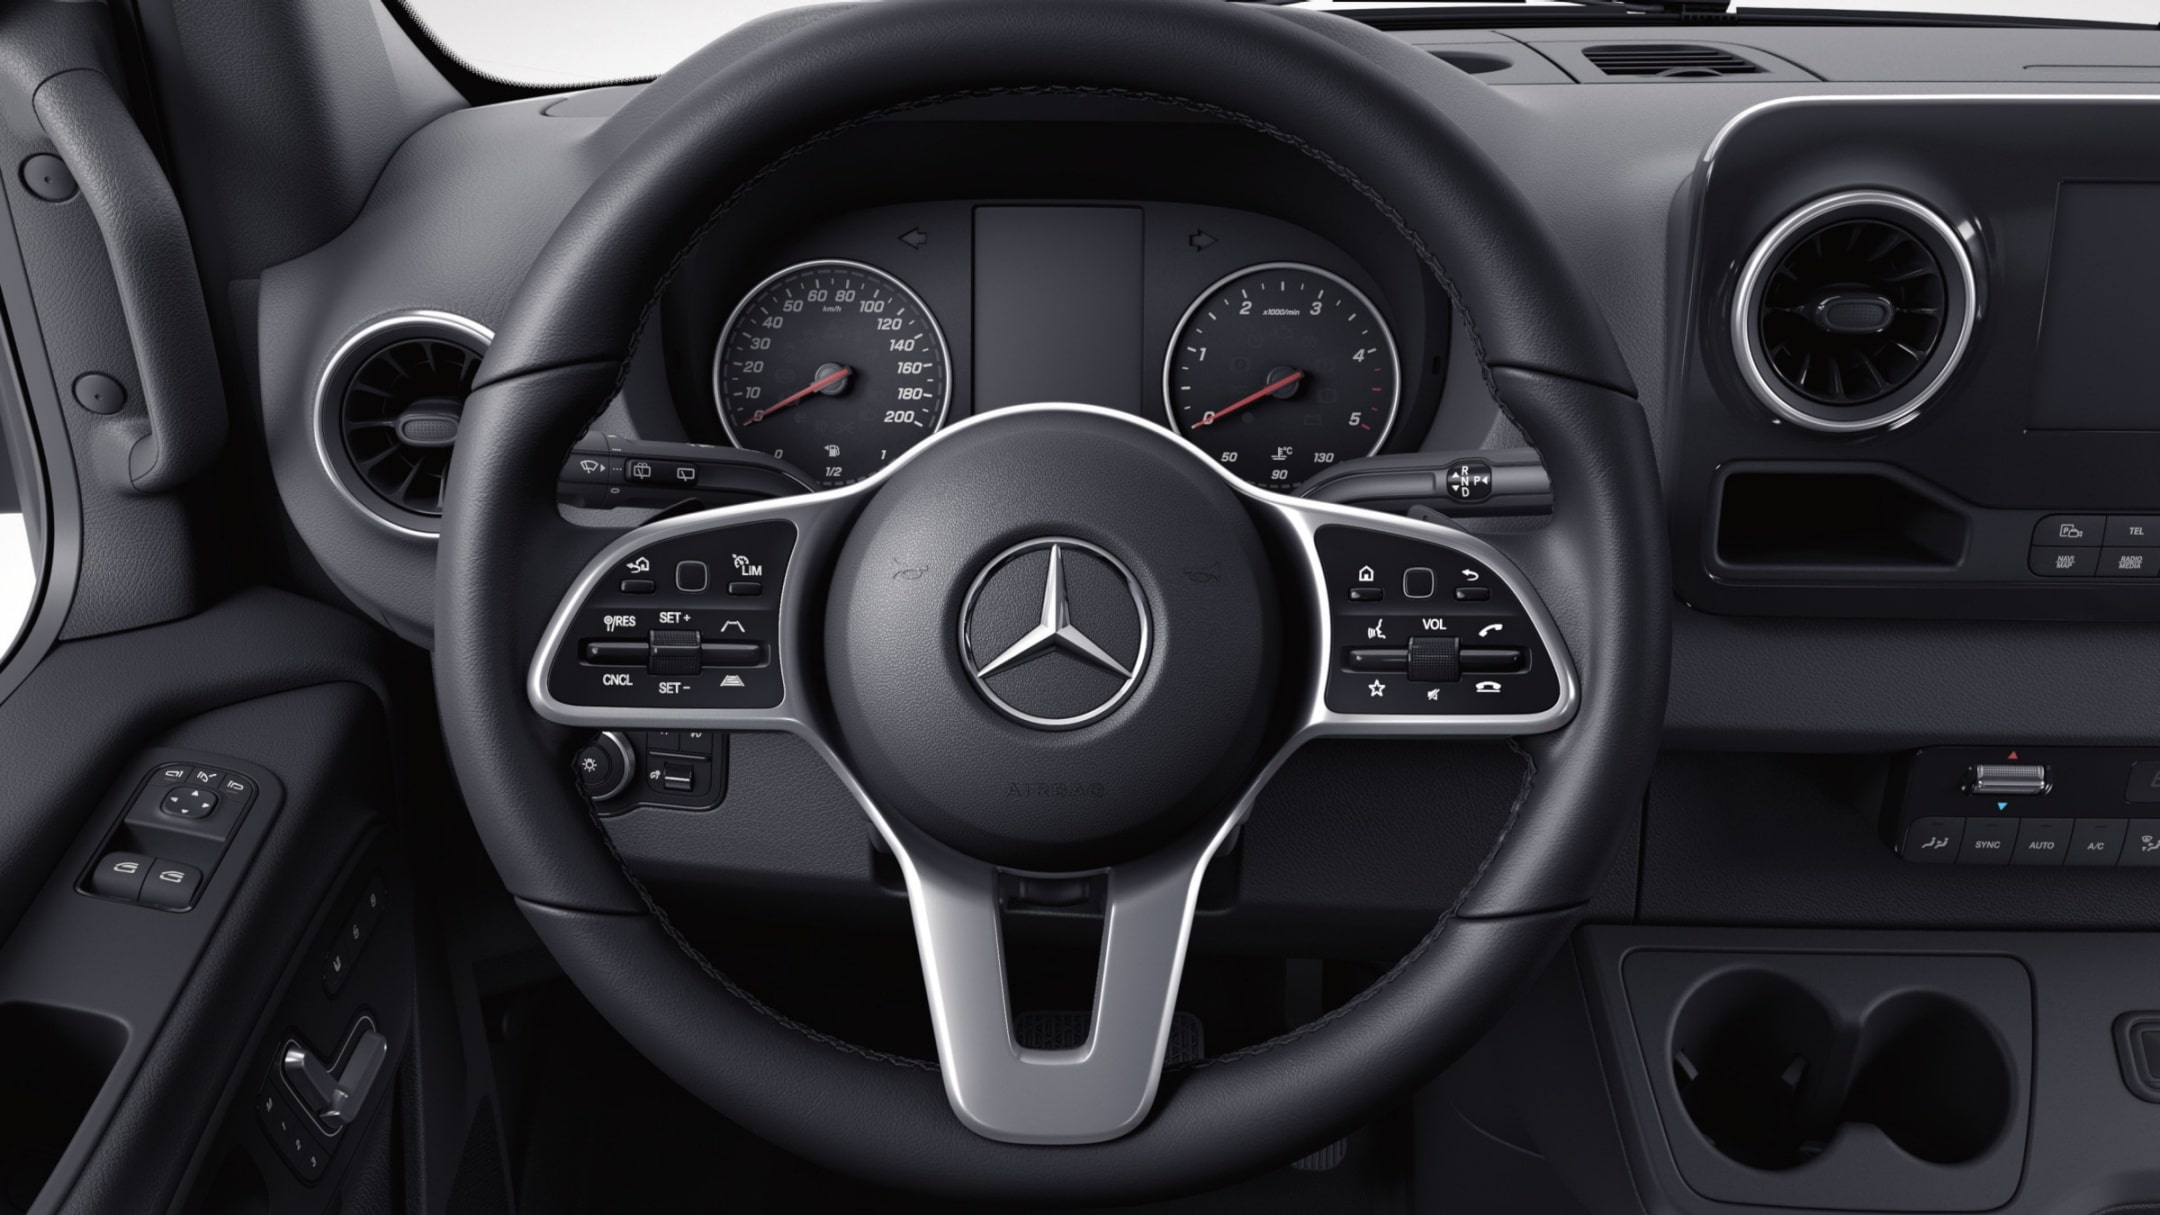 Sprinter Cab Chassis, multifunction steering wheel